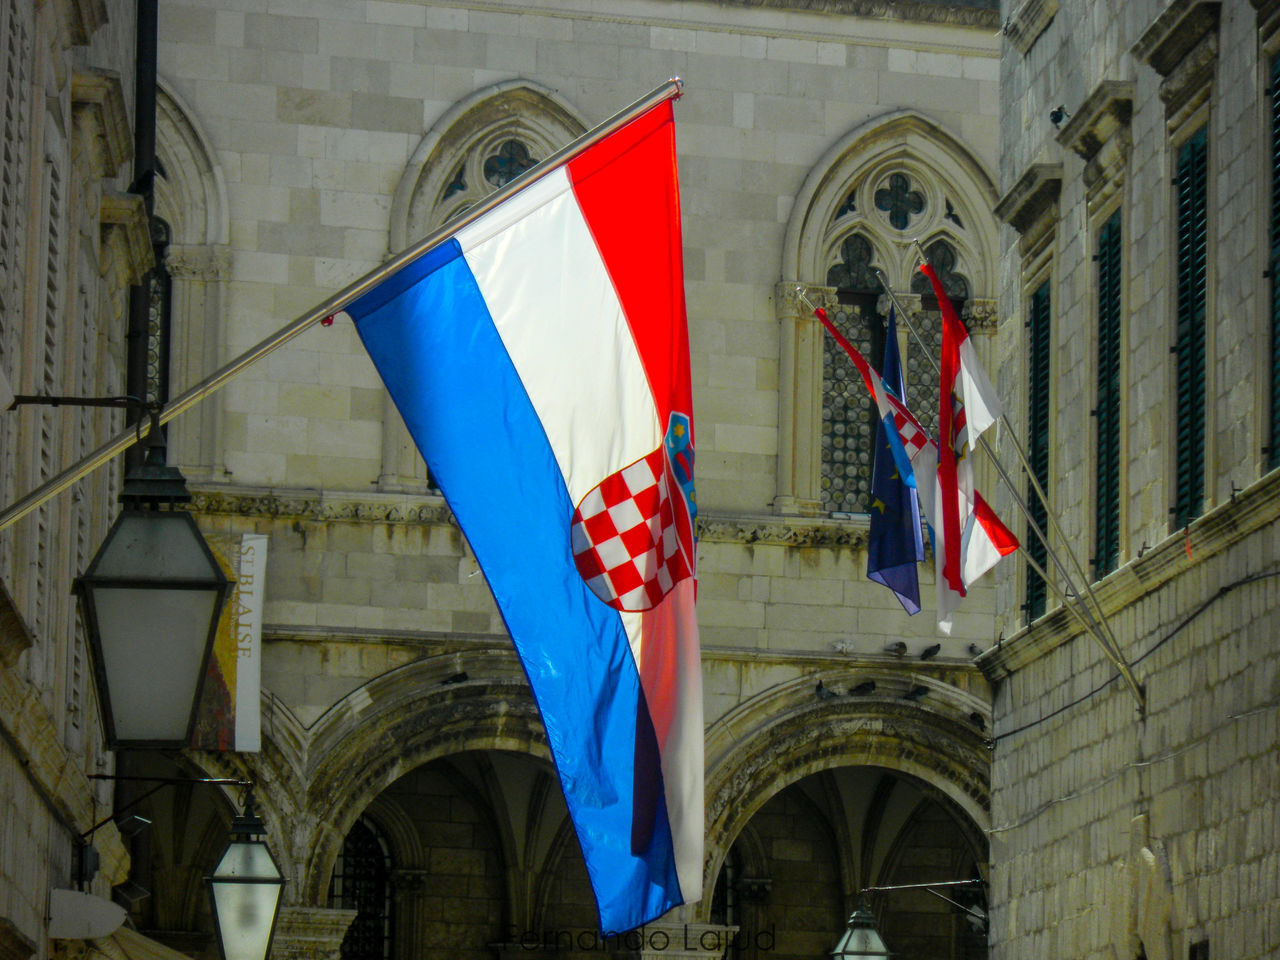 Patriotism Flag Pride National Icon Built Structure Building Exterior Low Angle View Day Travel Destinations Outdoors Color Splash Croatia Travel Sunlight Historical Monuments Color Photography Historical Place History Museum  Duvrovnik Nationalgeographic Croatian Landscape Croatia Exploring Vacations Summer